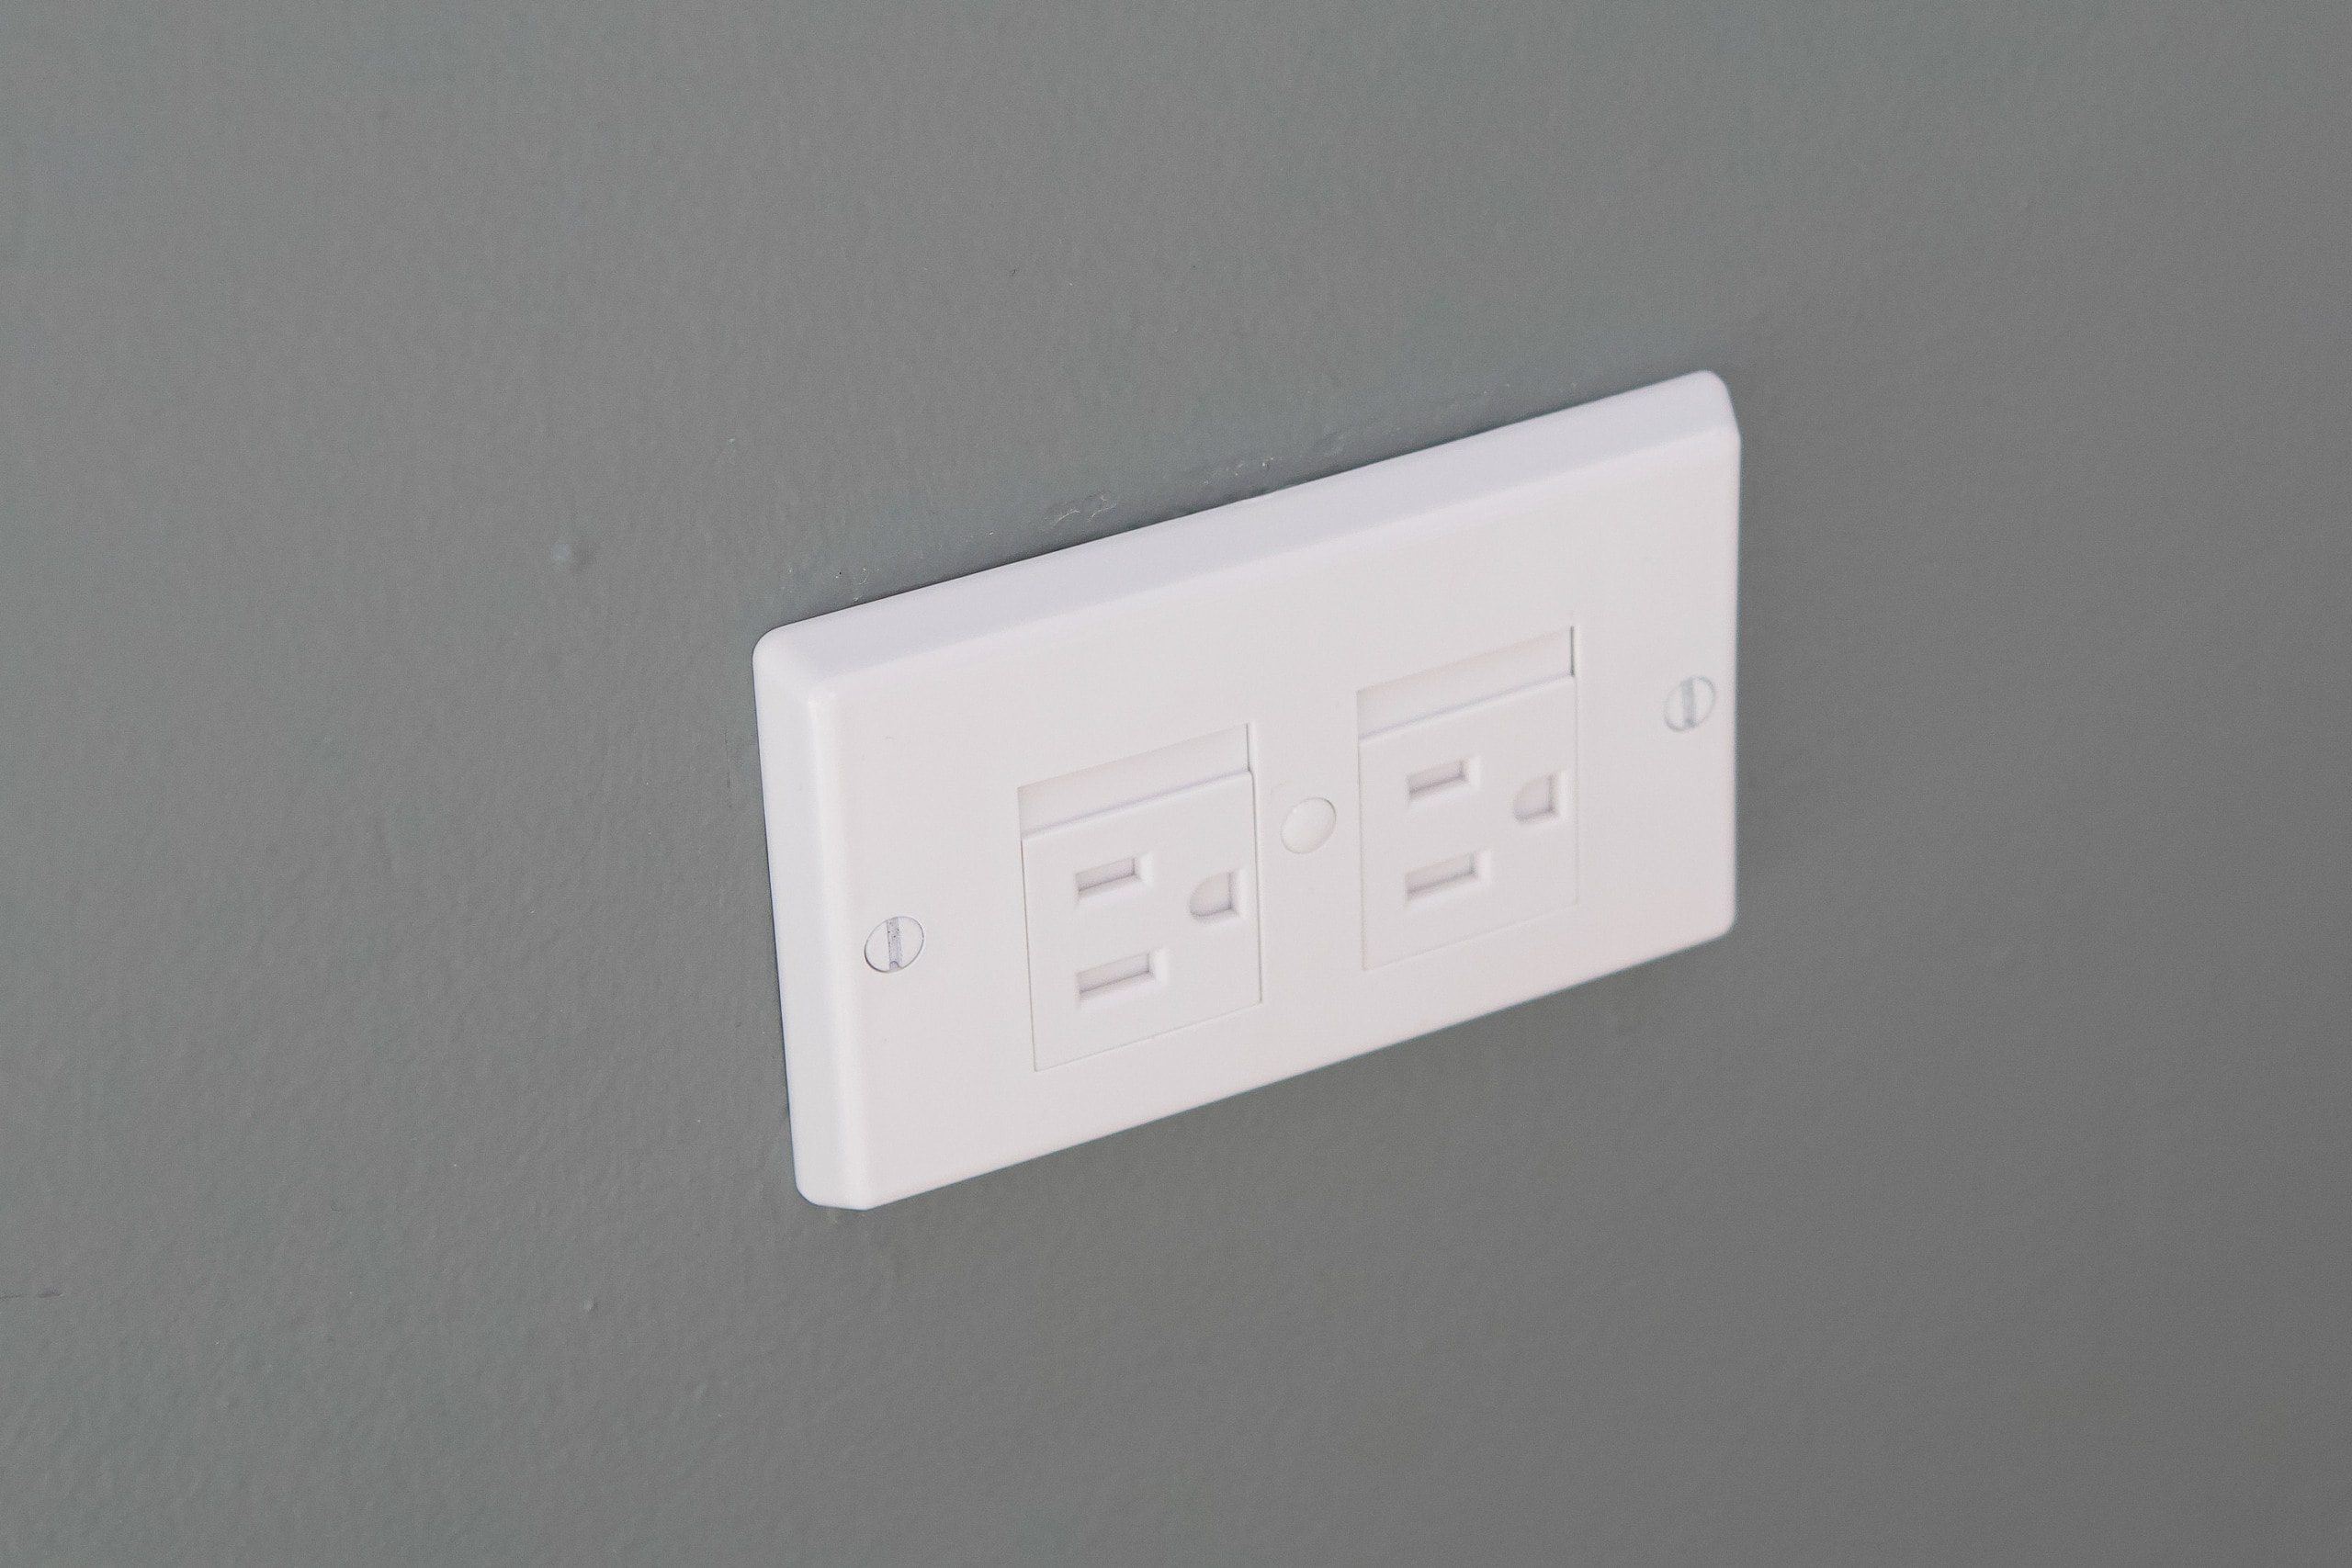 Tips to babyproof your home, use these electrical covers